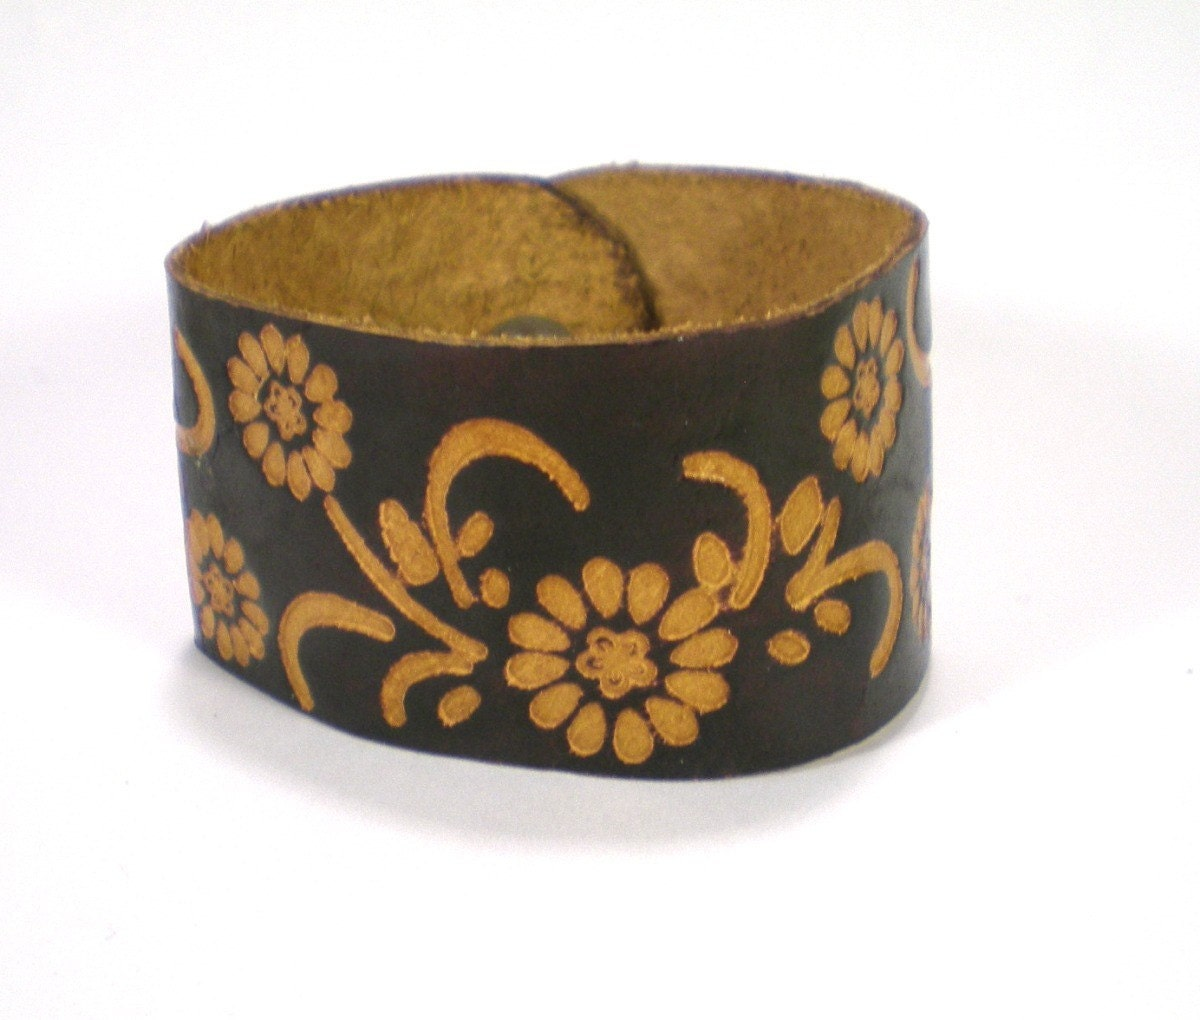 Vintage Hand Tooled Leather Floral Cuff Bracelet by antiquorama from etsy.com